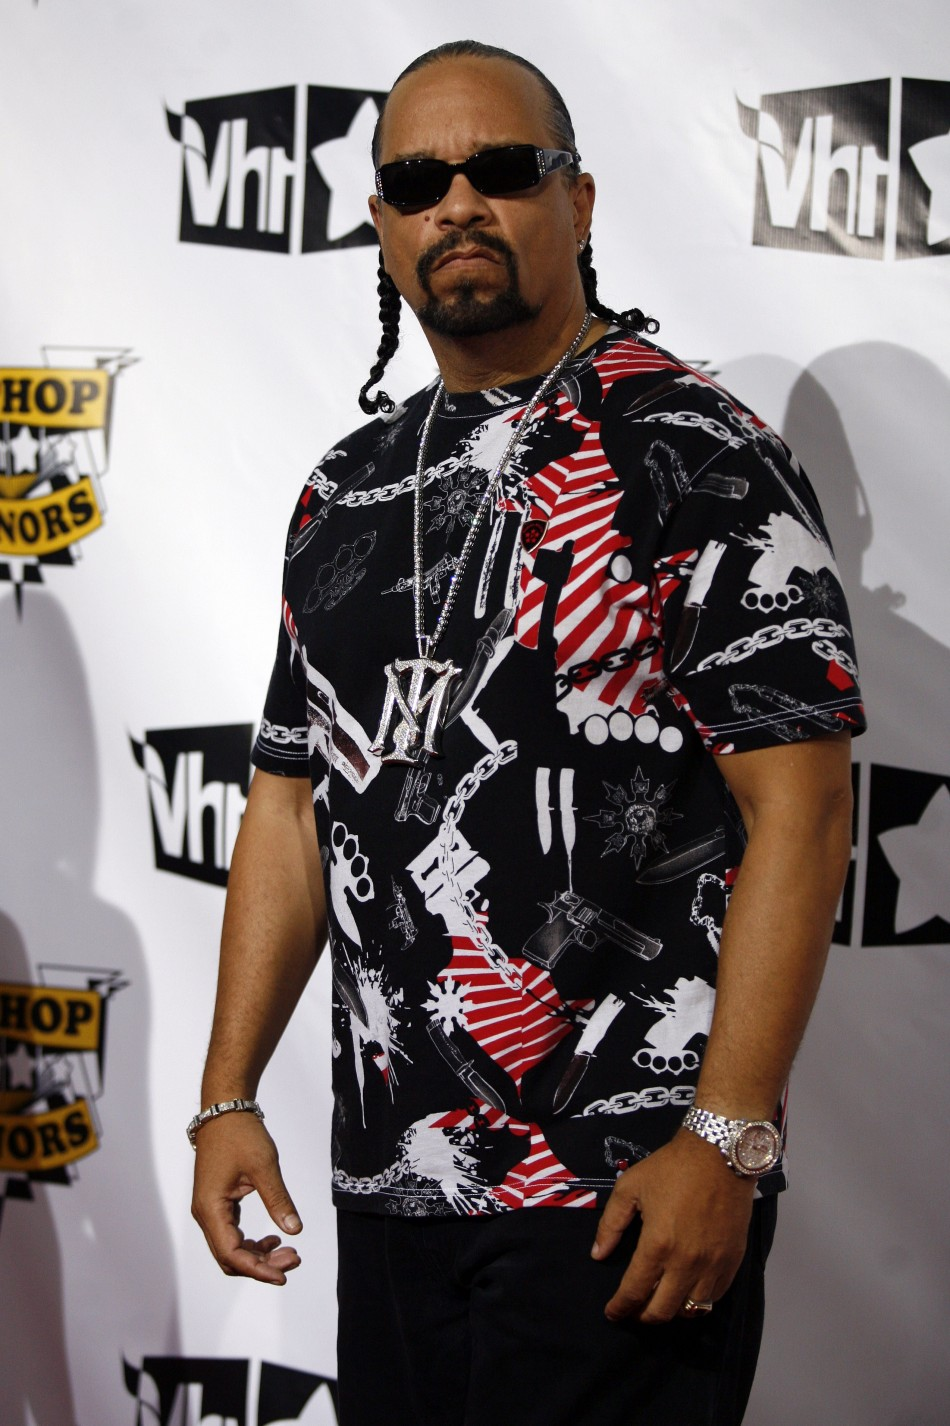 Rapper Ice T arrives at the 4th Annual VH1 Hip Hop Honors event in New York